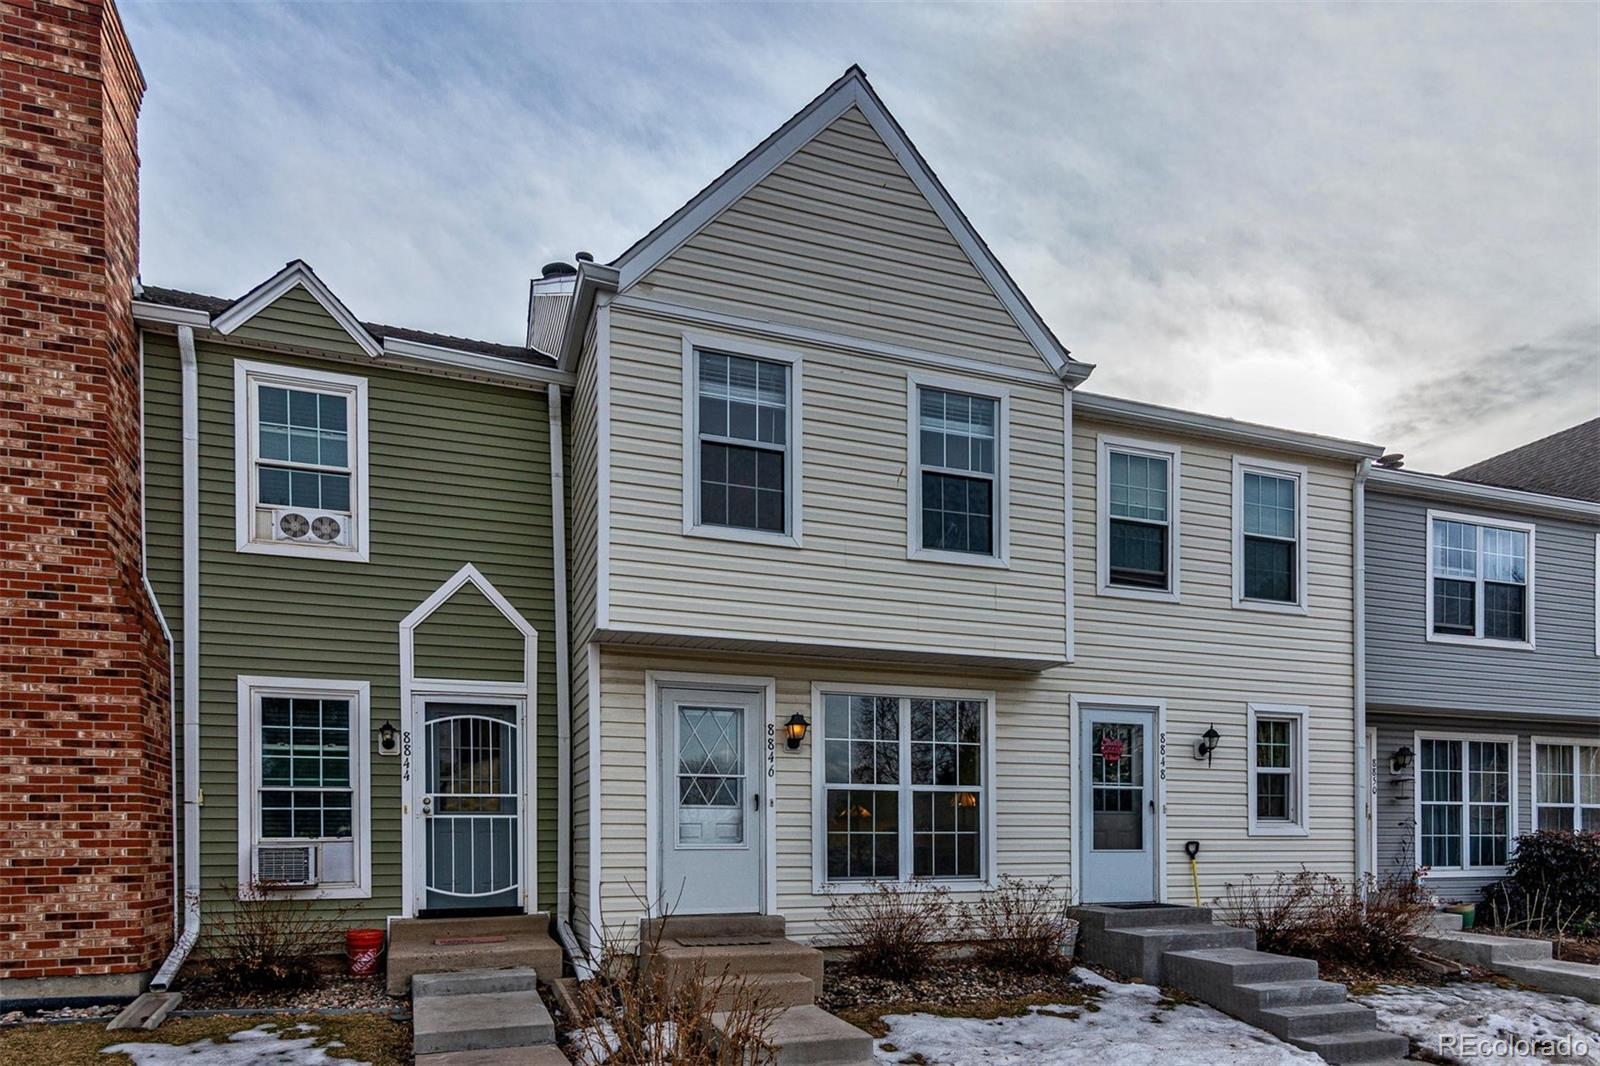 MLS# 6379353 - 26 - 8846 W Dartmouth Place, Lakewood, CO 80227